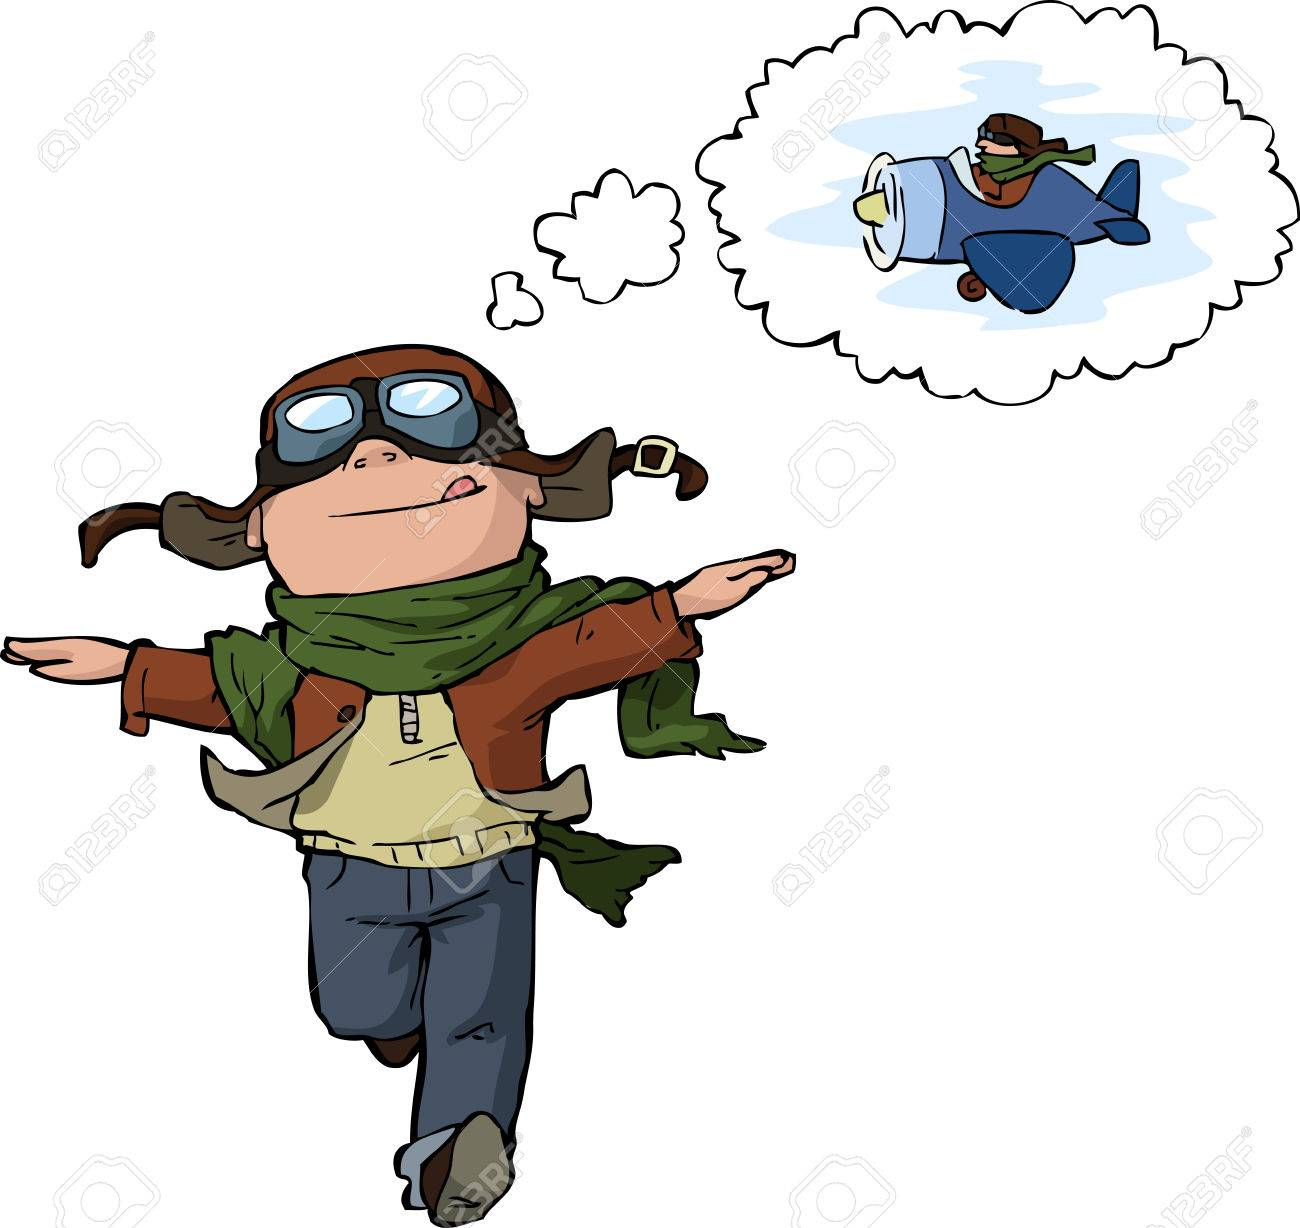 Dreaming young pilot on a white background vector illustration - 27439758